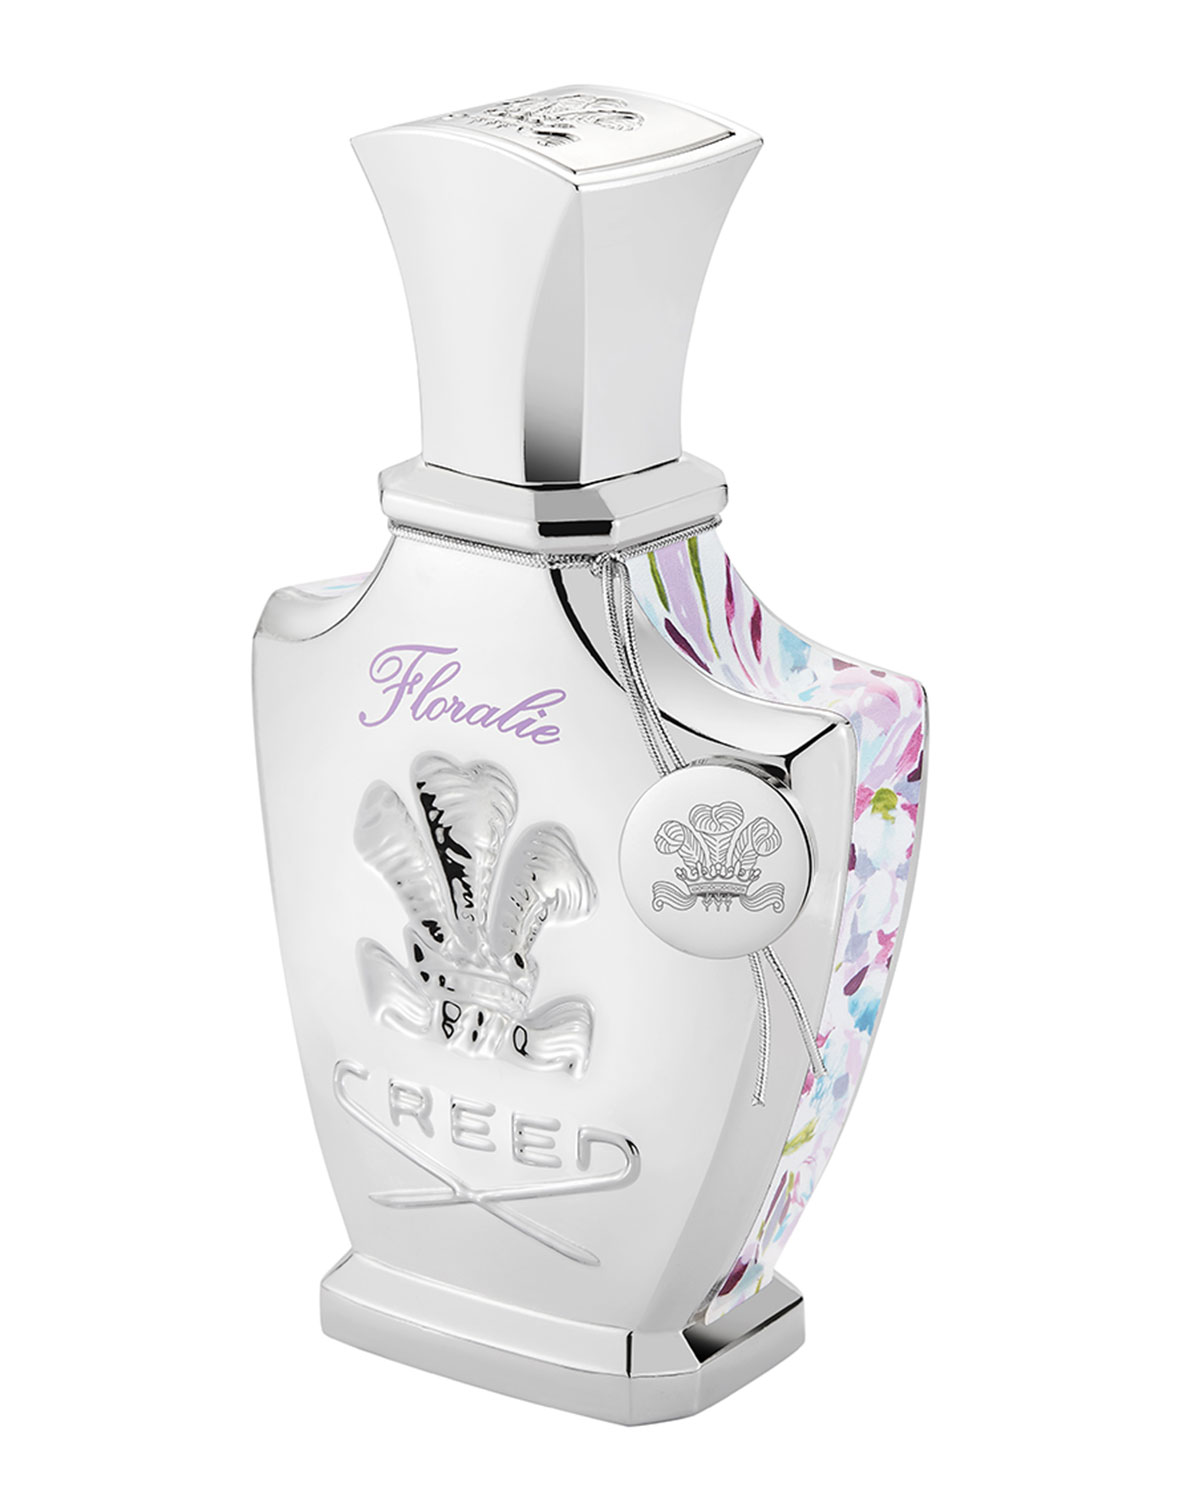 Floralie Creed Perfume A New Fragrance For Women 2018